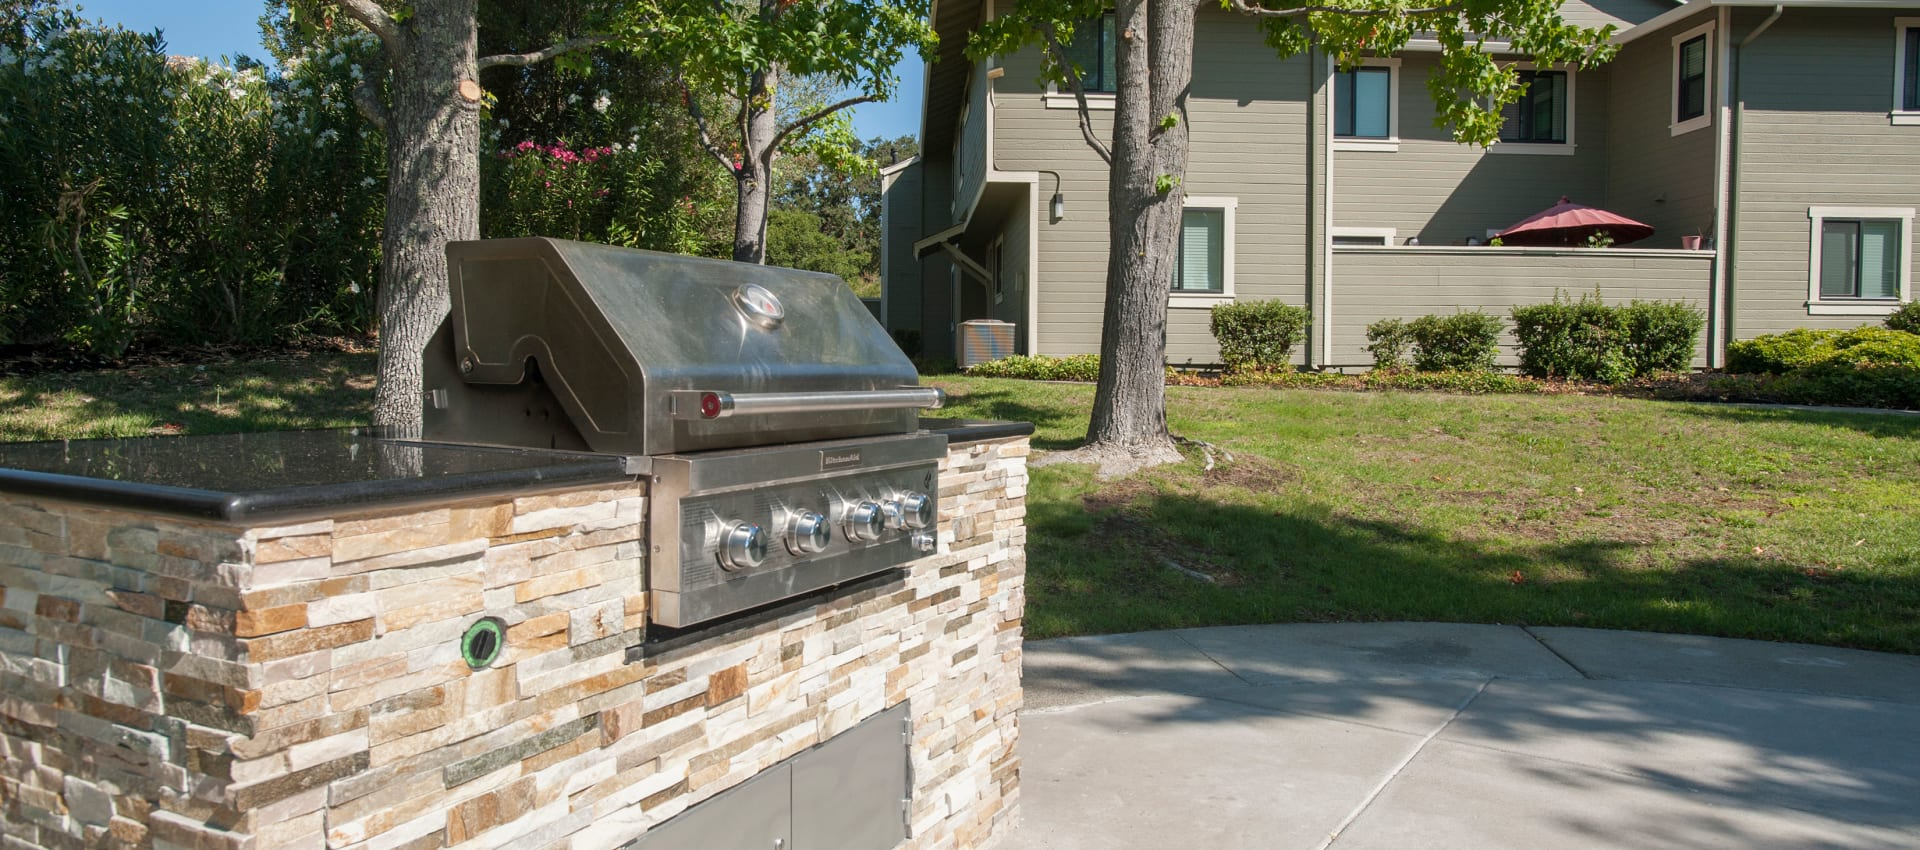 Community barbecue at Ridgecrest Apartment Homes in Martinez, California